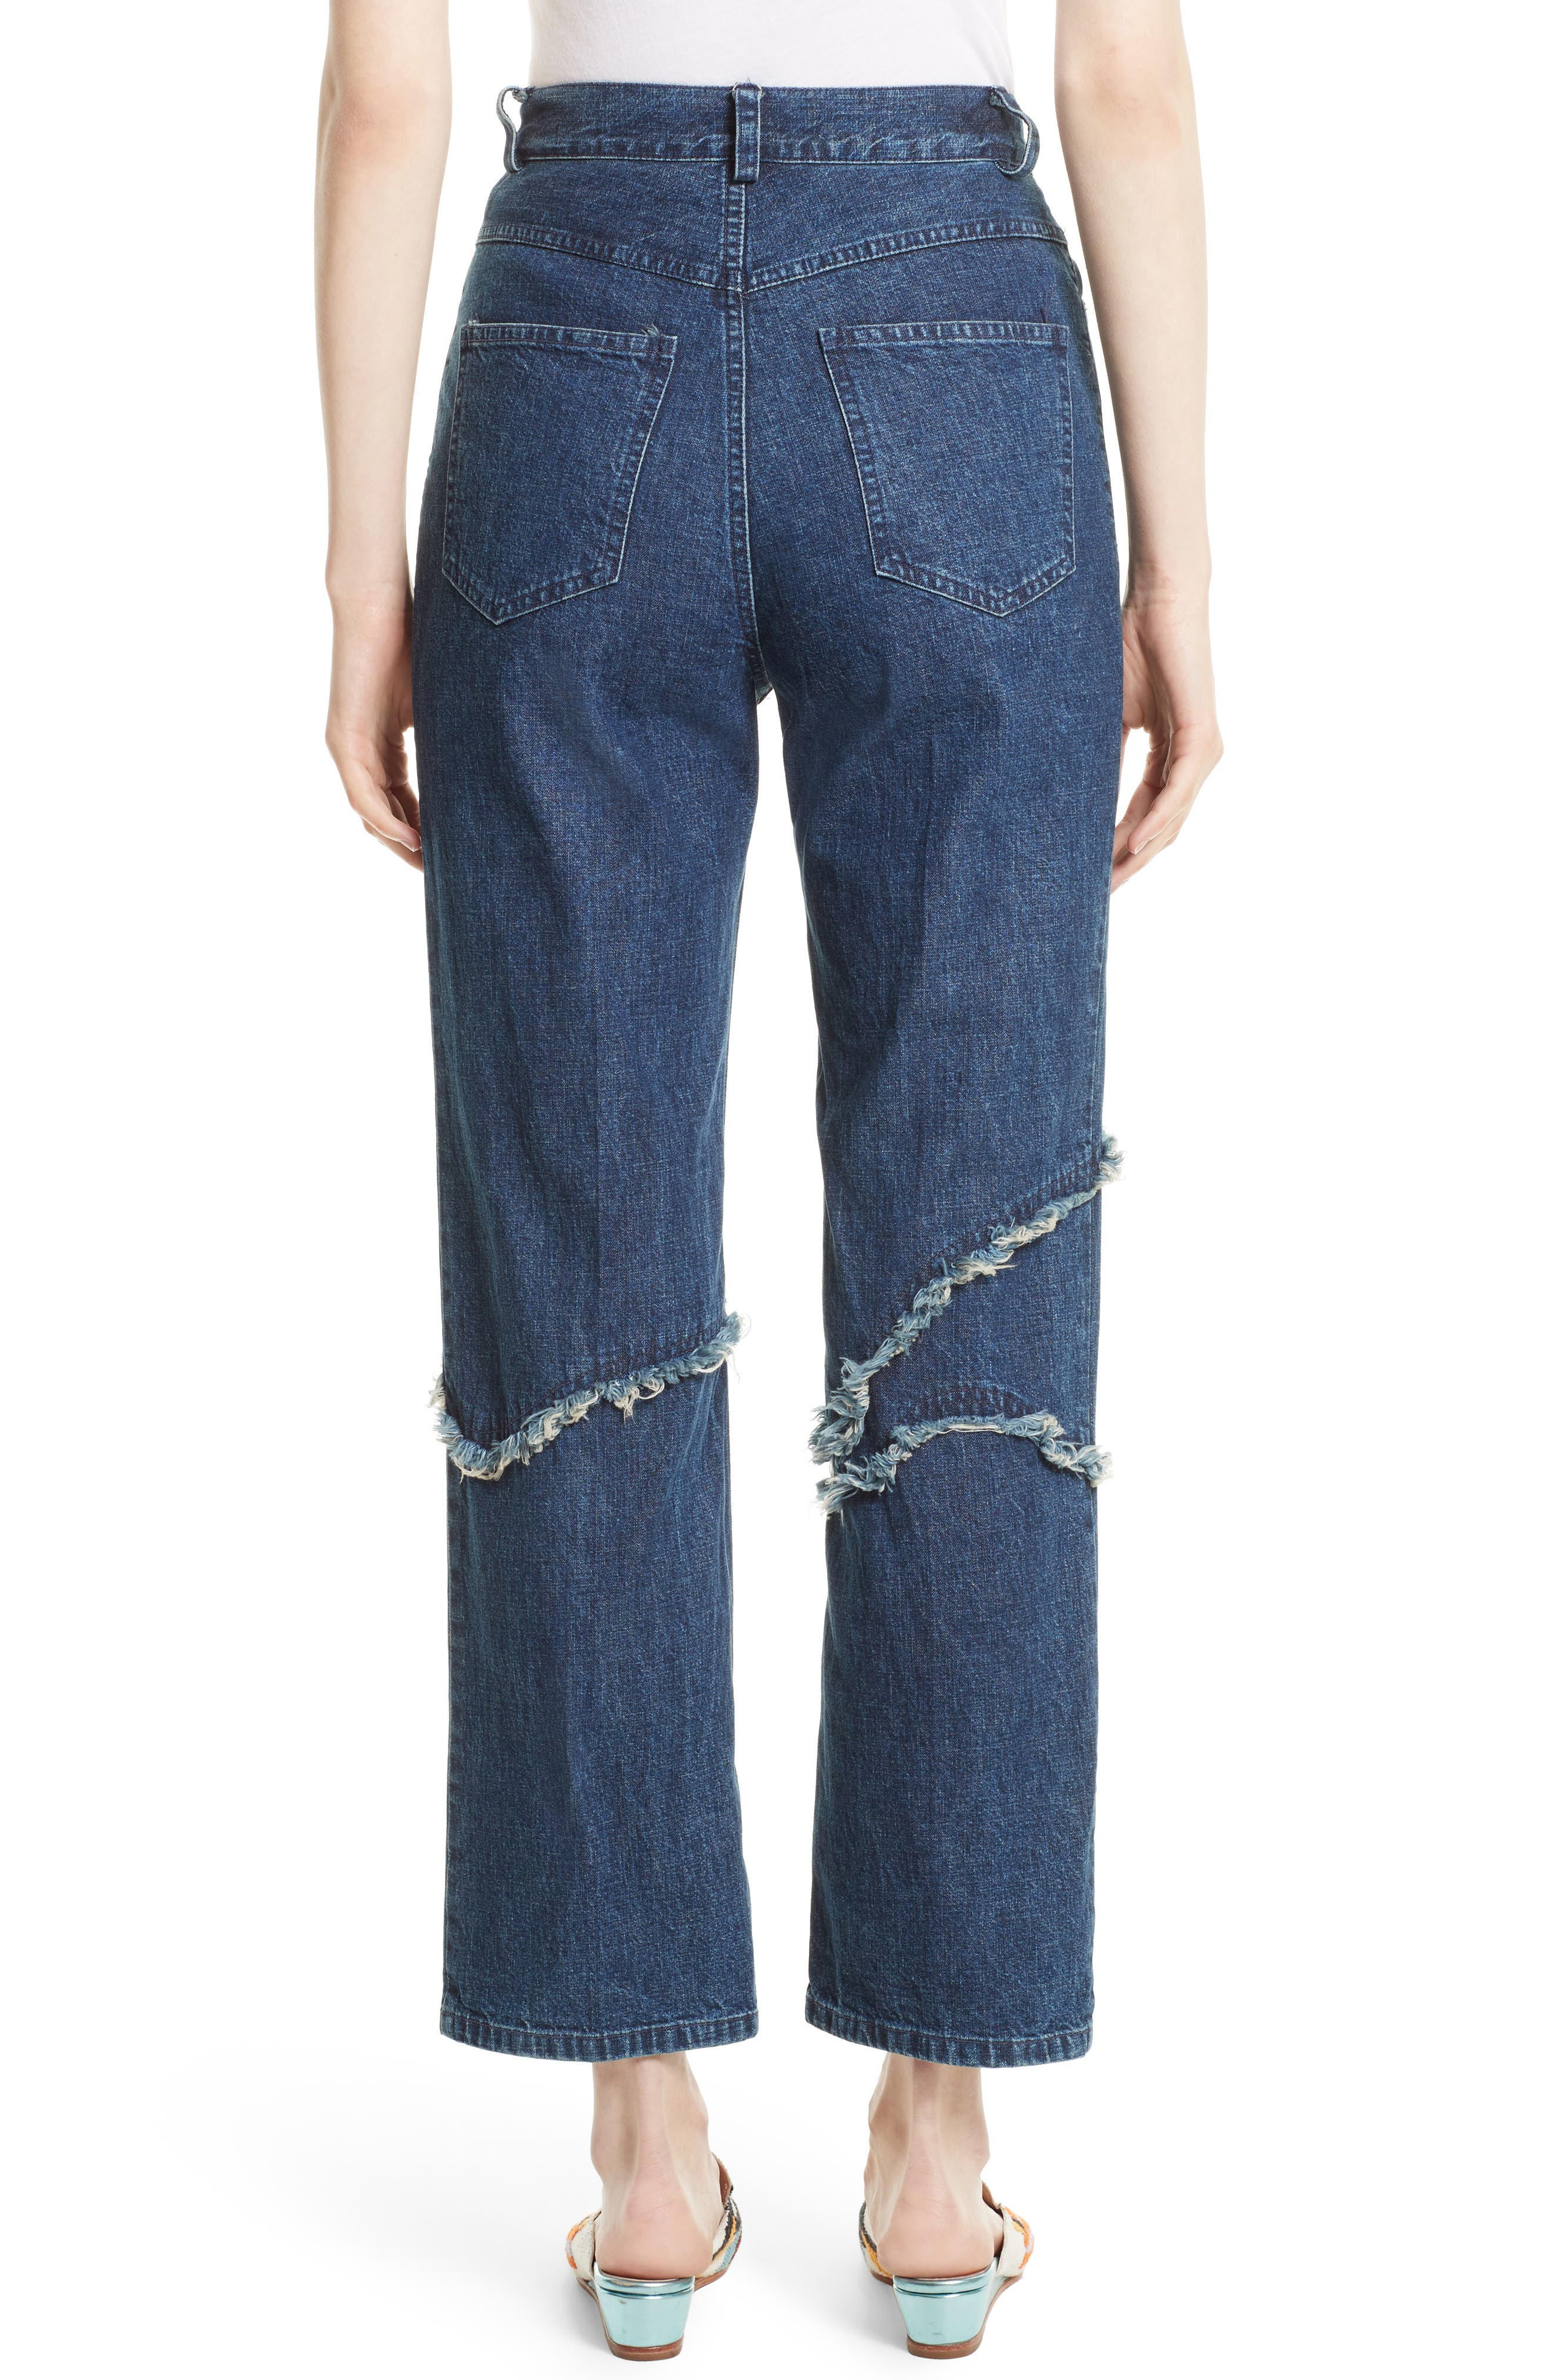 Ticklers Frayed High Waist Crop Jeans,                             Alternate thumbnail 2, color,                             420